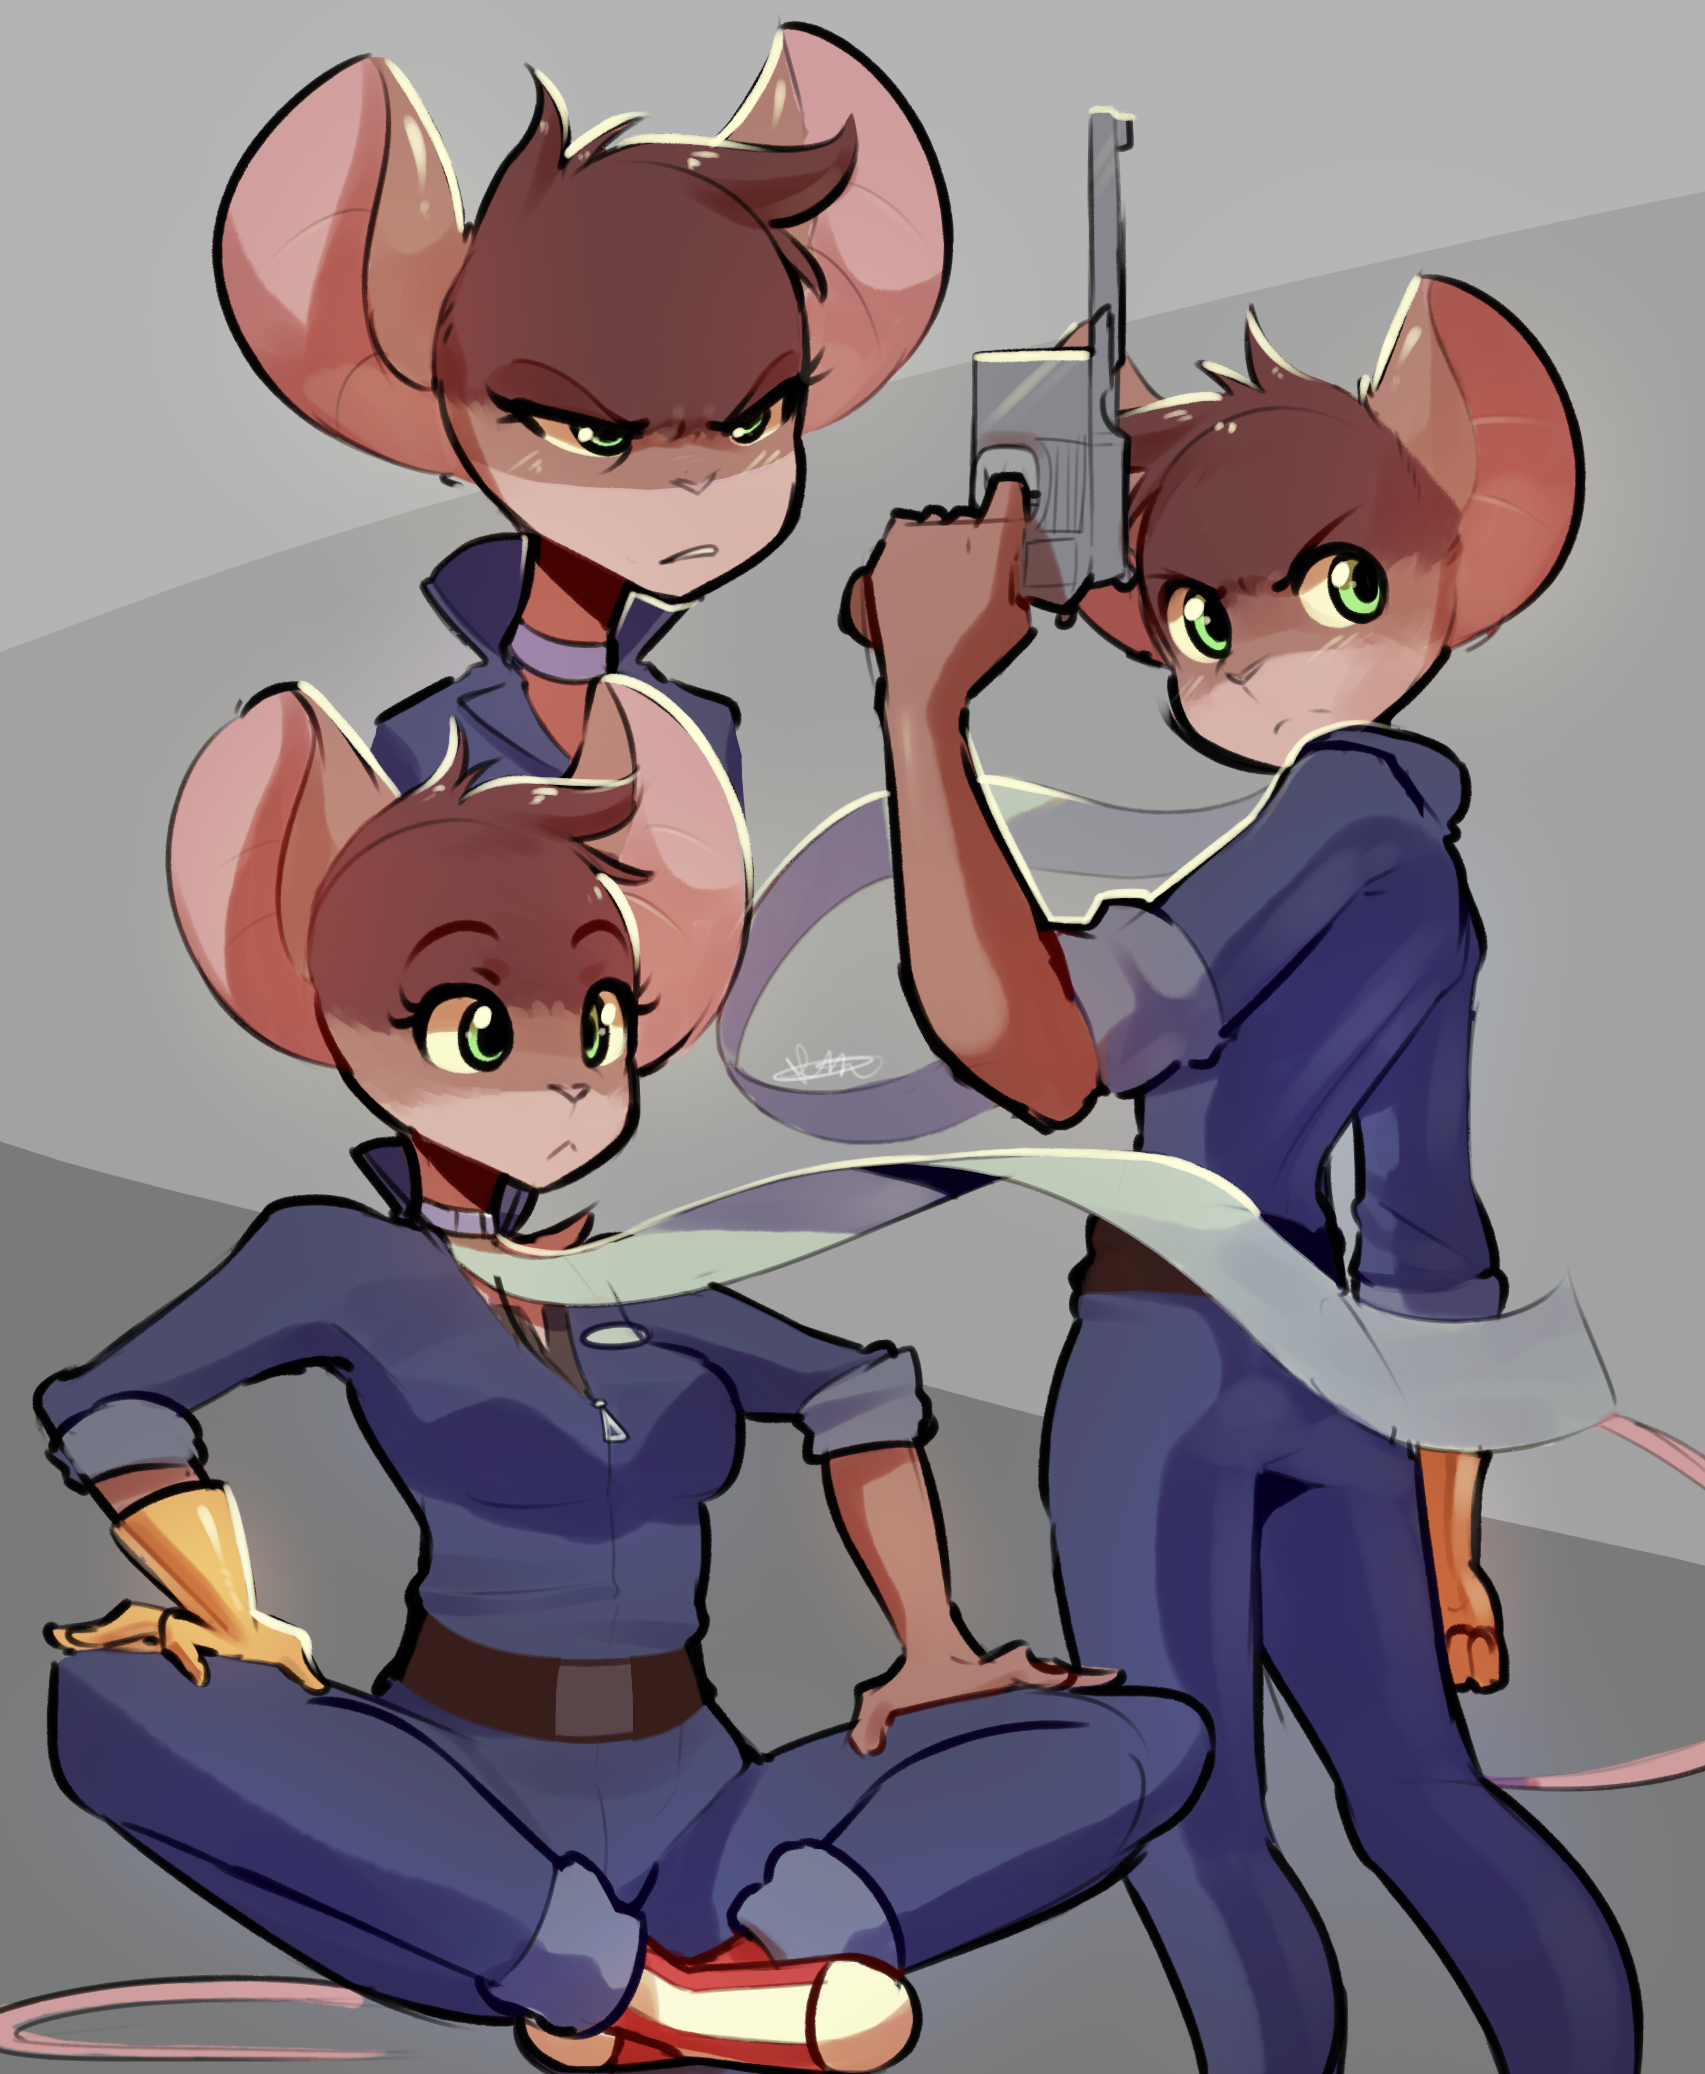 mags (beezii's mouse)